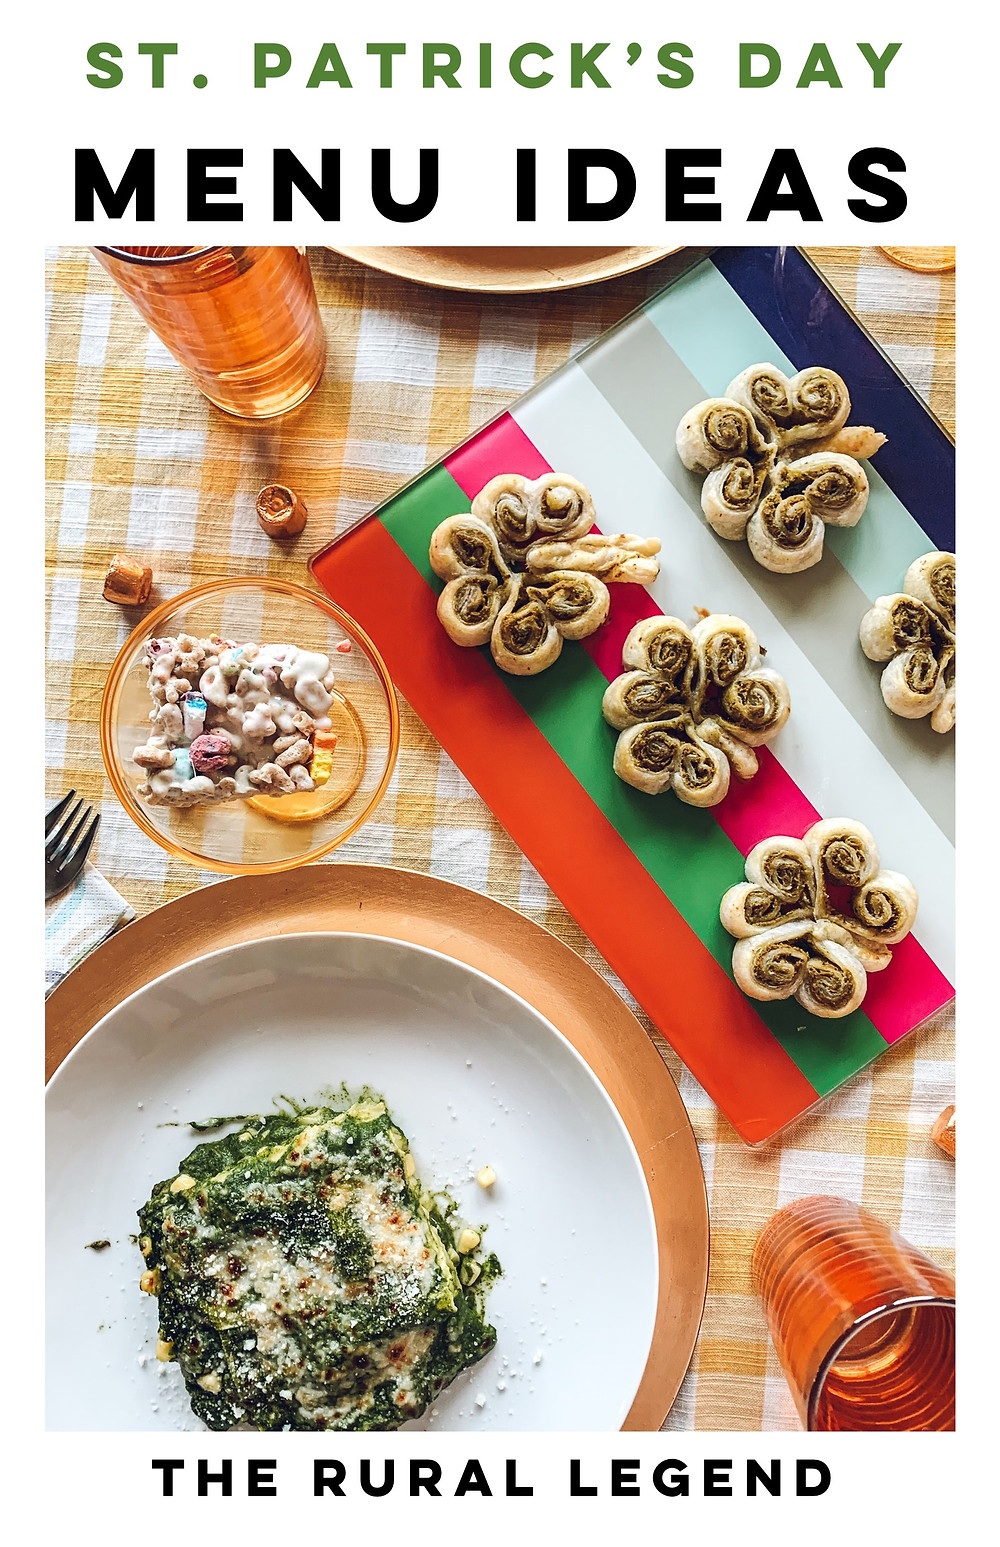 St Patrick's Day recipe, St Patrick's Day menu, St Patrick's Day party ideas, St Patrick's Day food, green food, healthy family friendly recipes, kid friendly recipes, easy weeknight recipes, freezer meals, broccoli pesto, lasagna recipe, easy no bake desserts, spring party, spring table scape, spring décor, st patrick's day décor, st patrick's day table scape, st patrick's day table decorations, healthy recipes ideas, party décor ideas, green party ideas, green party food, easy party recipes, healthy comfort food recipes